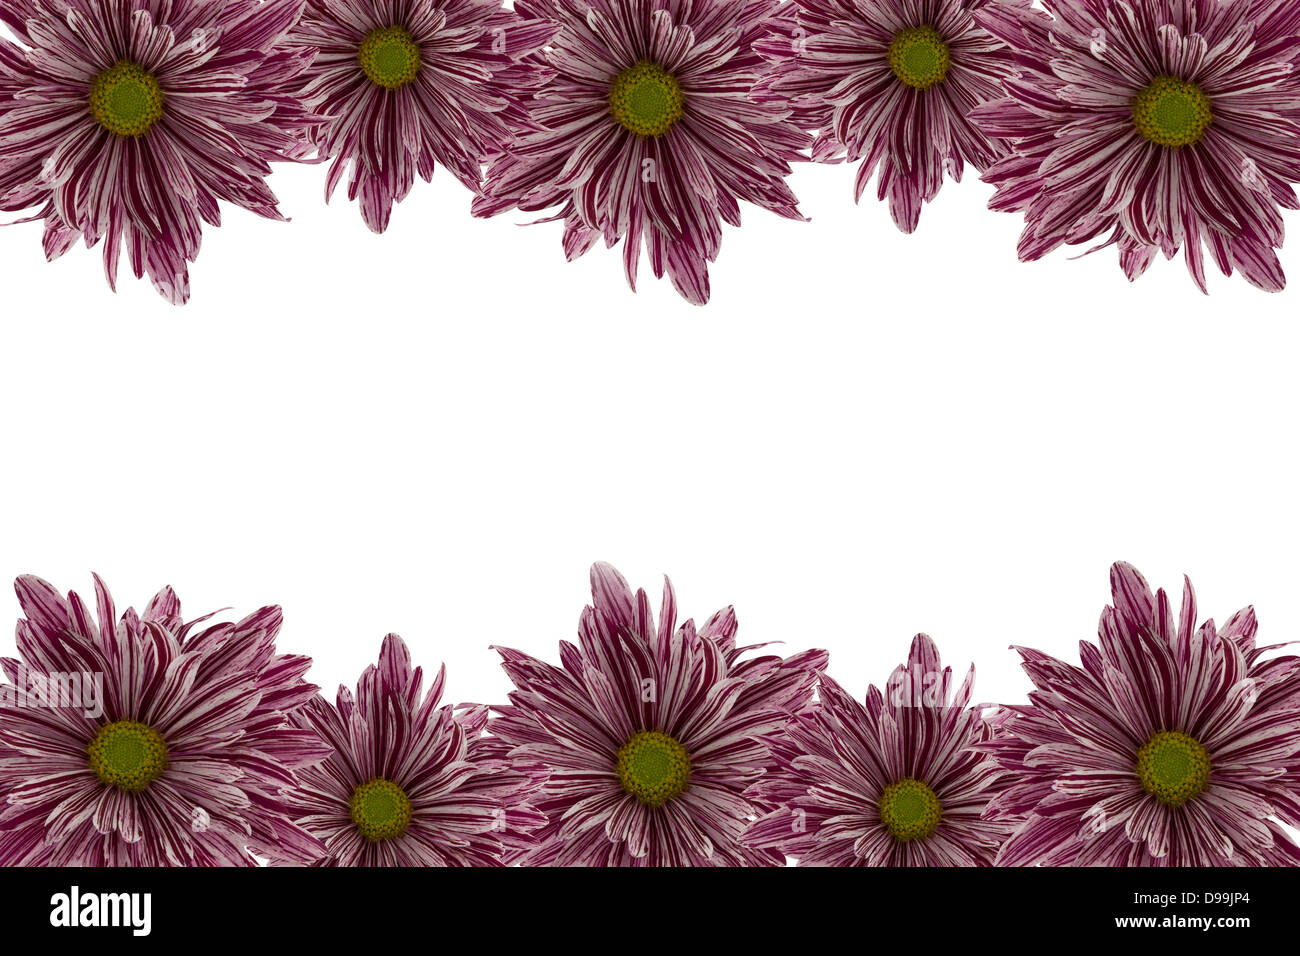 Pink chrysanthemum border with a white background. - Stock Image